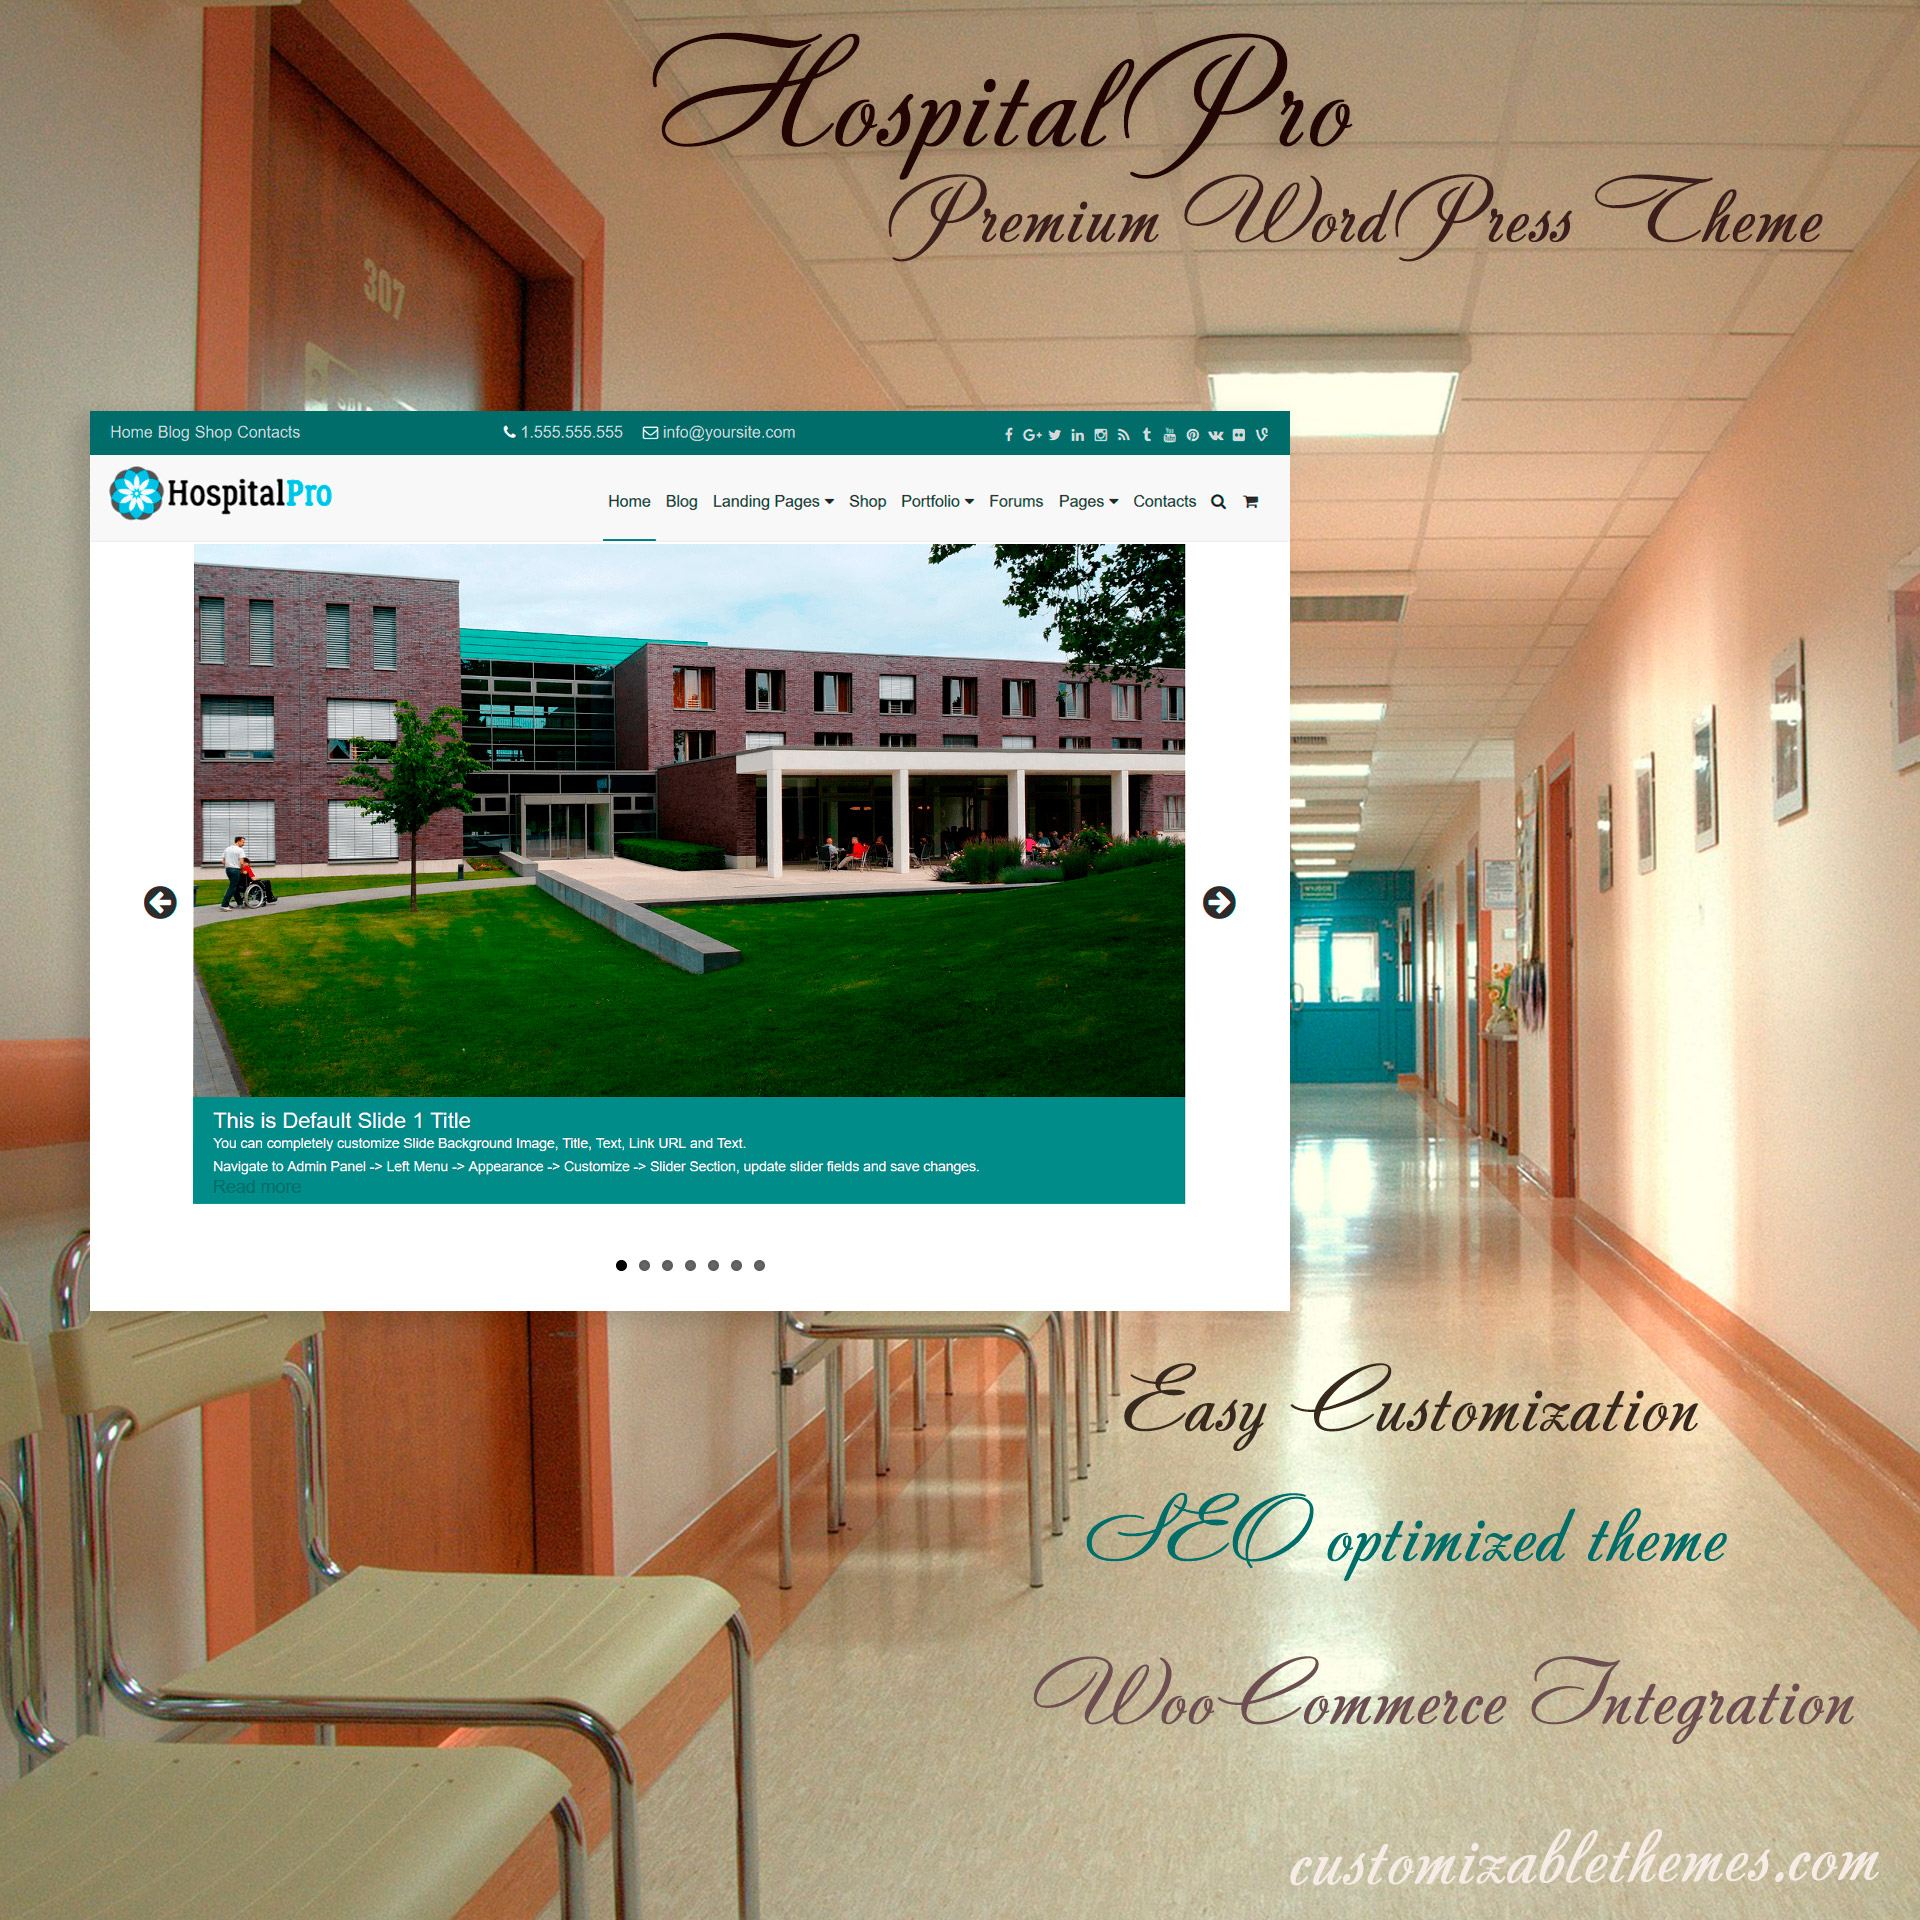 hospitalpro-premium-wordpress-theme-mockup-customizablethemes-com